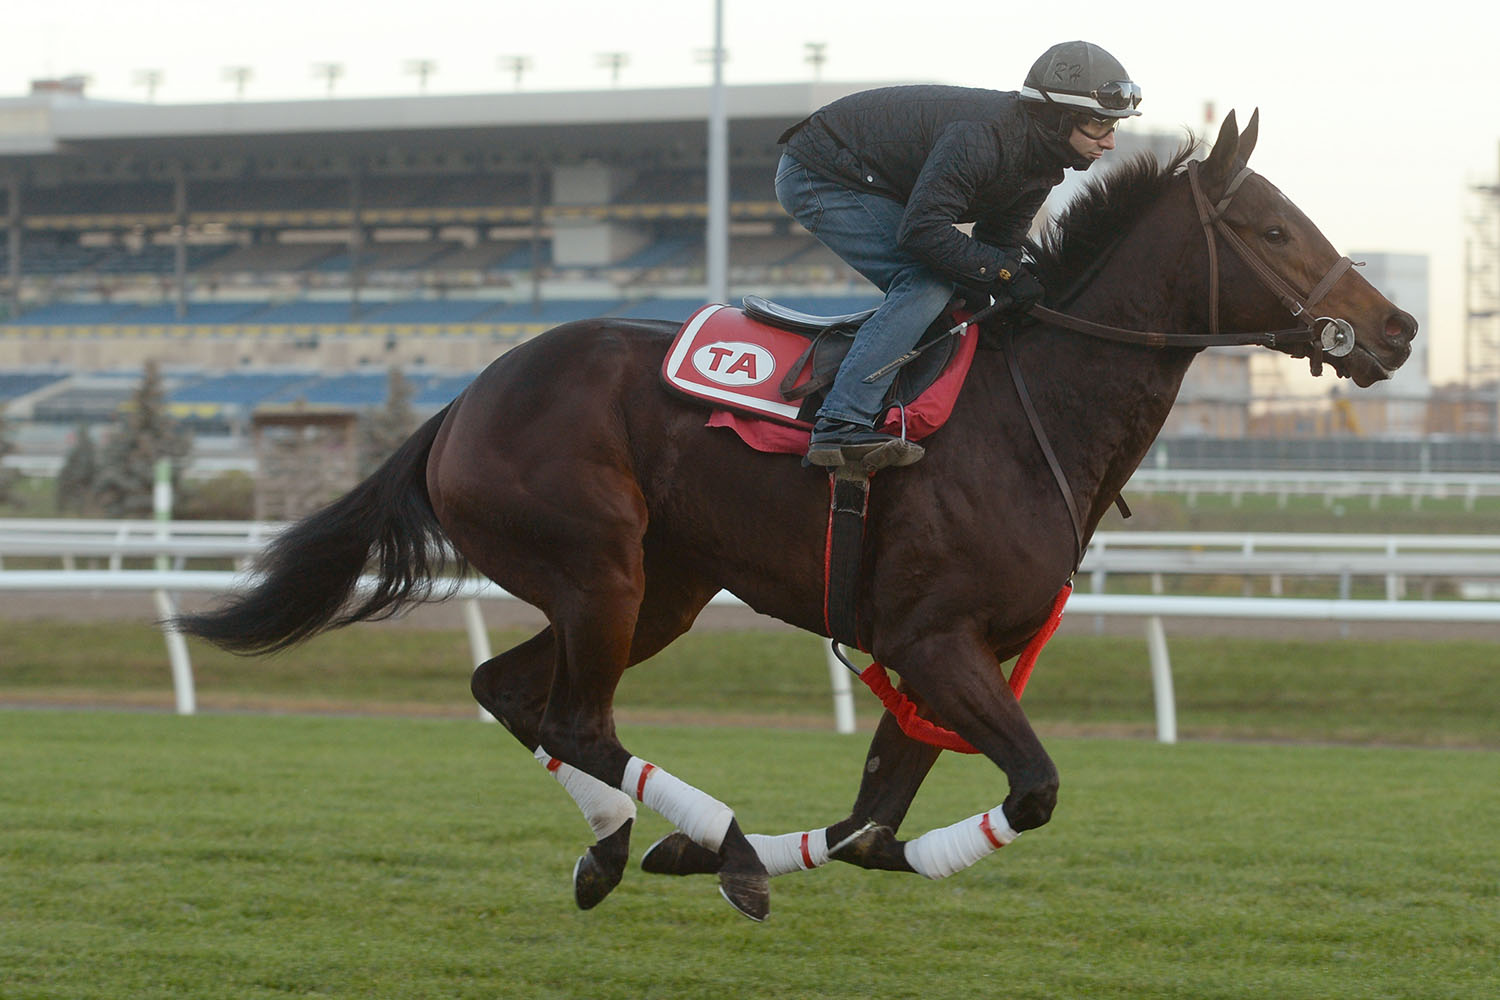 Merveilleux breezing at Woodbine in preparation for the Wonder Where Stakes. (Michael Burns Photo)